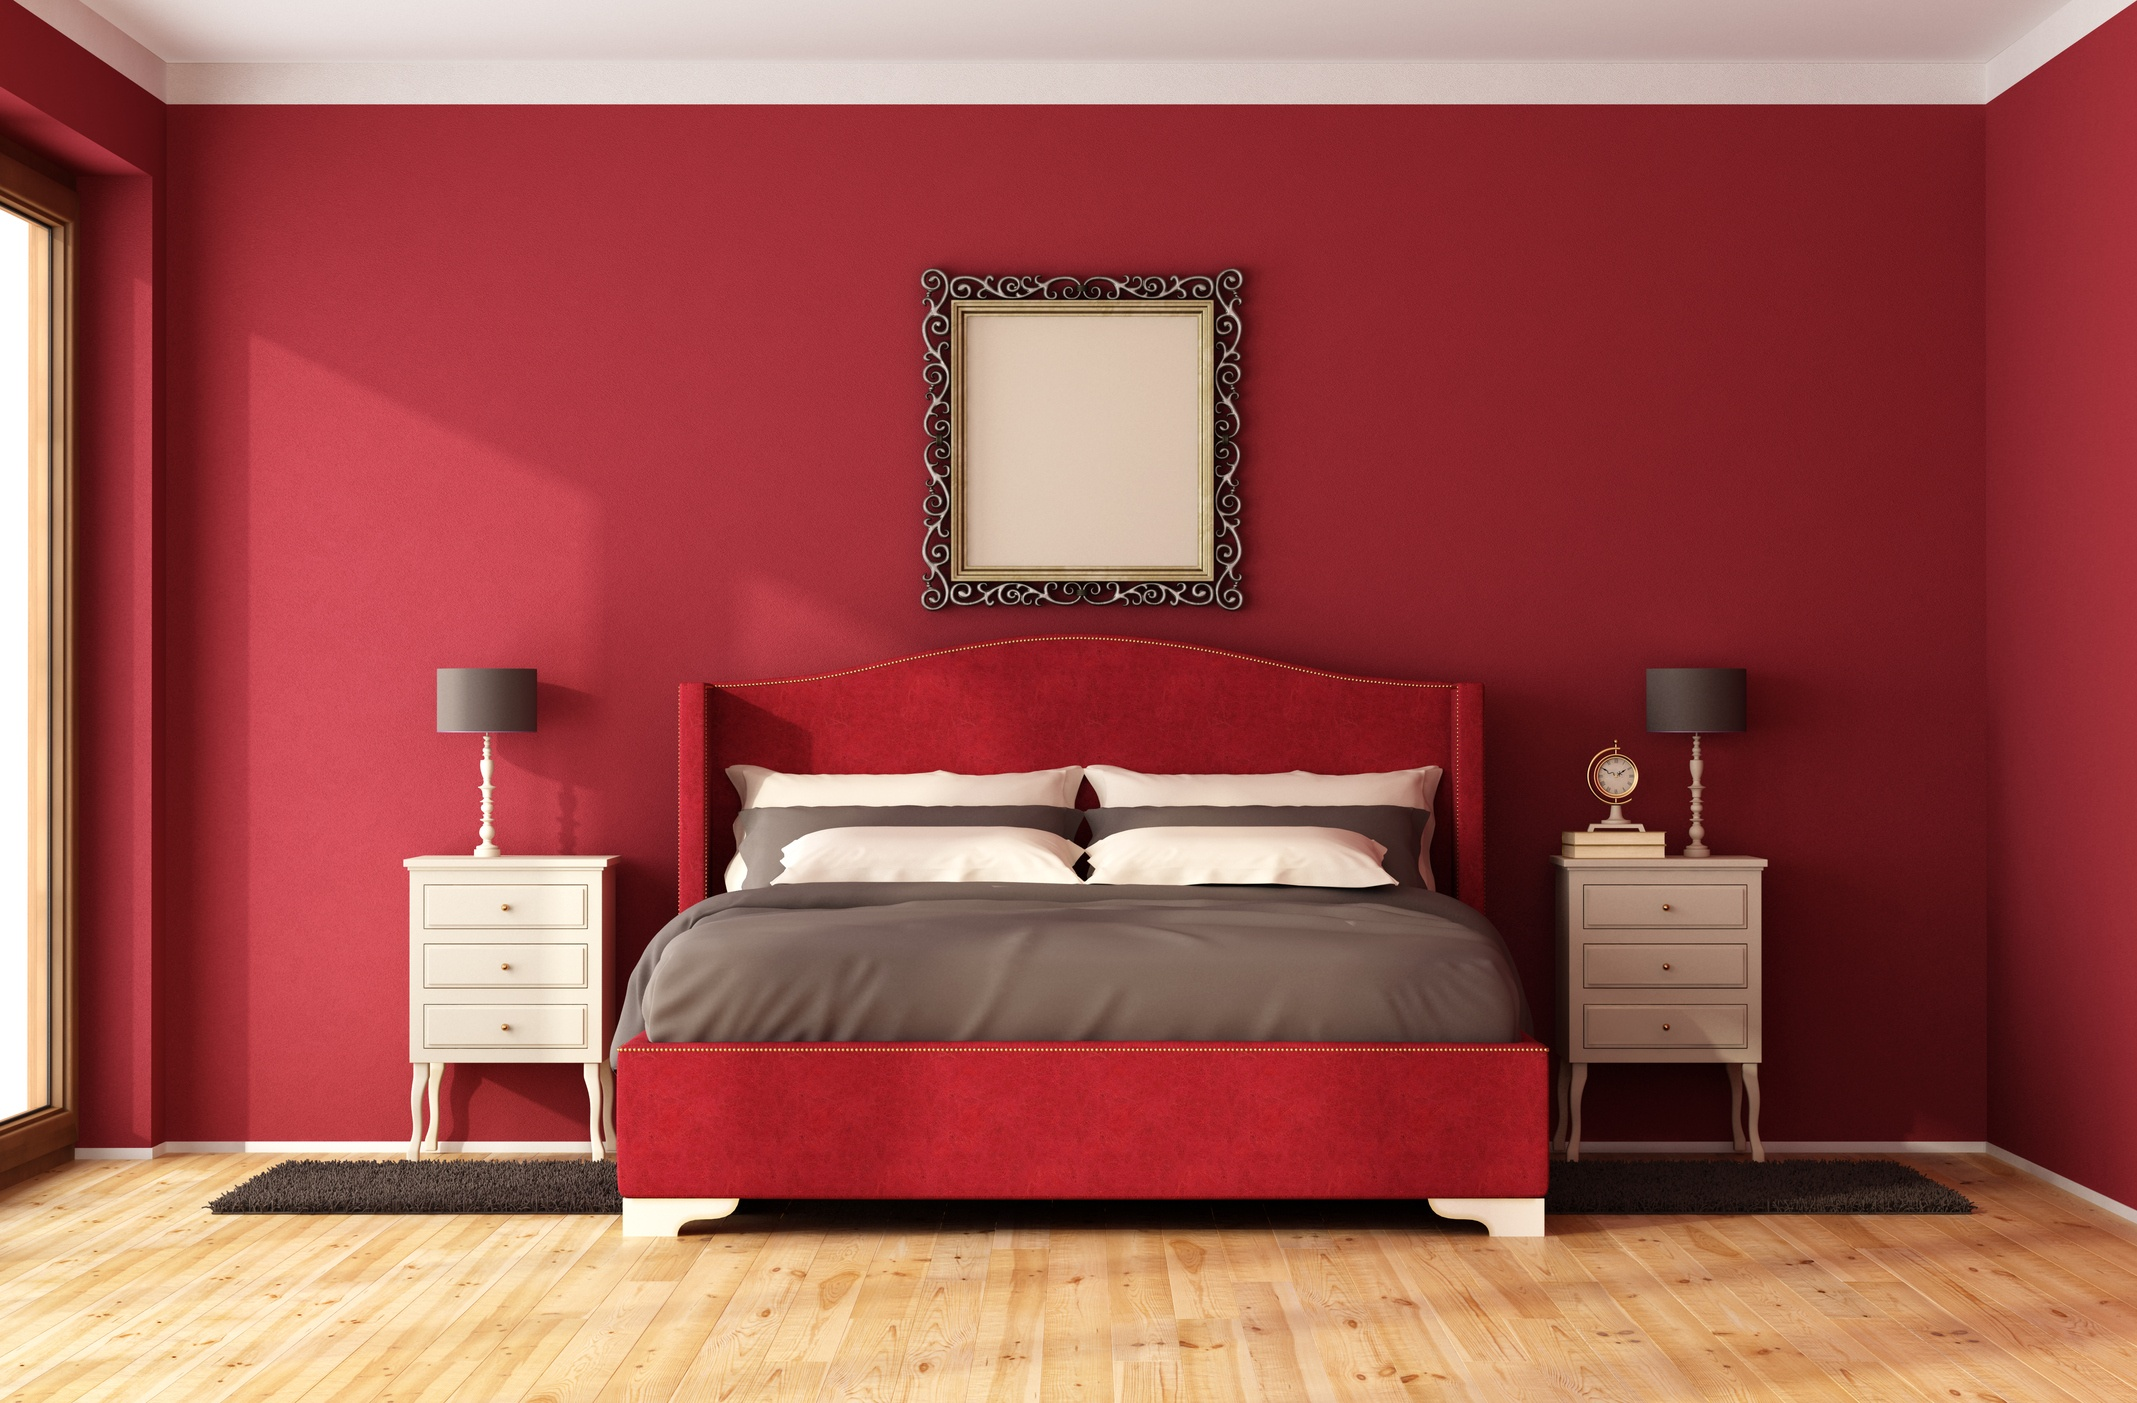 Farbgestaltung Wohnzimmer Rotes Sofa These Are The Worst Paint Colors You Should Never Use In